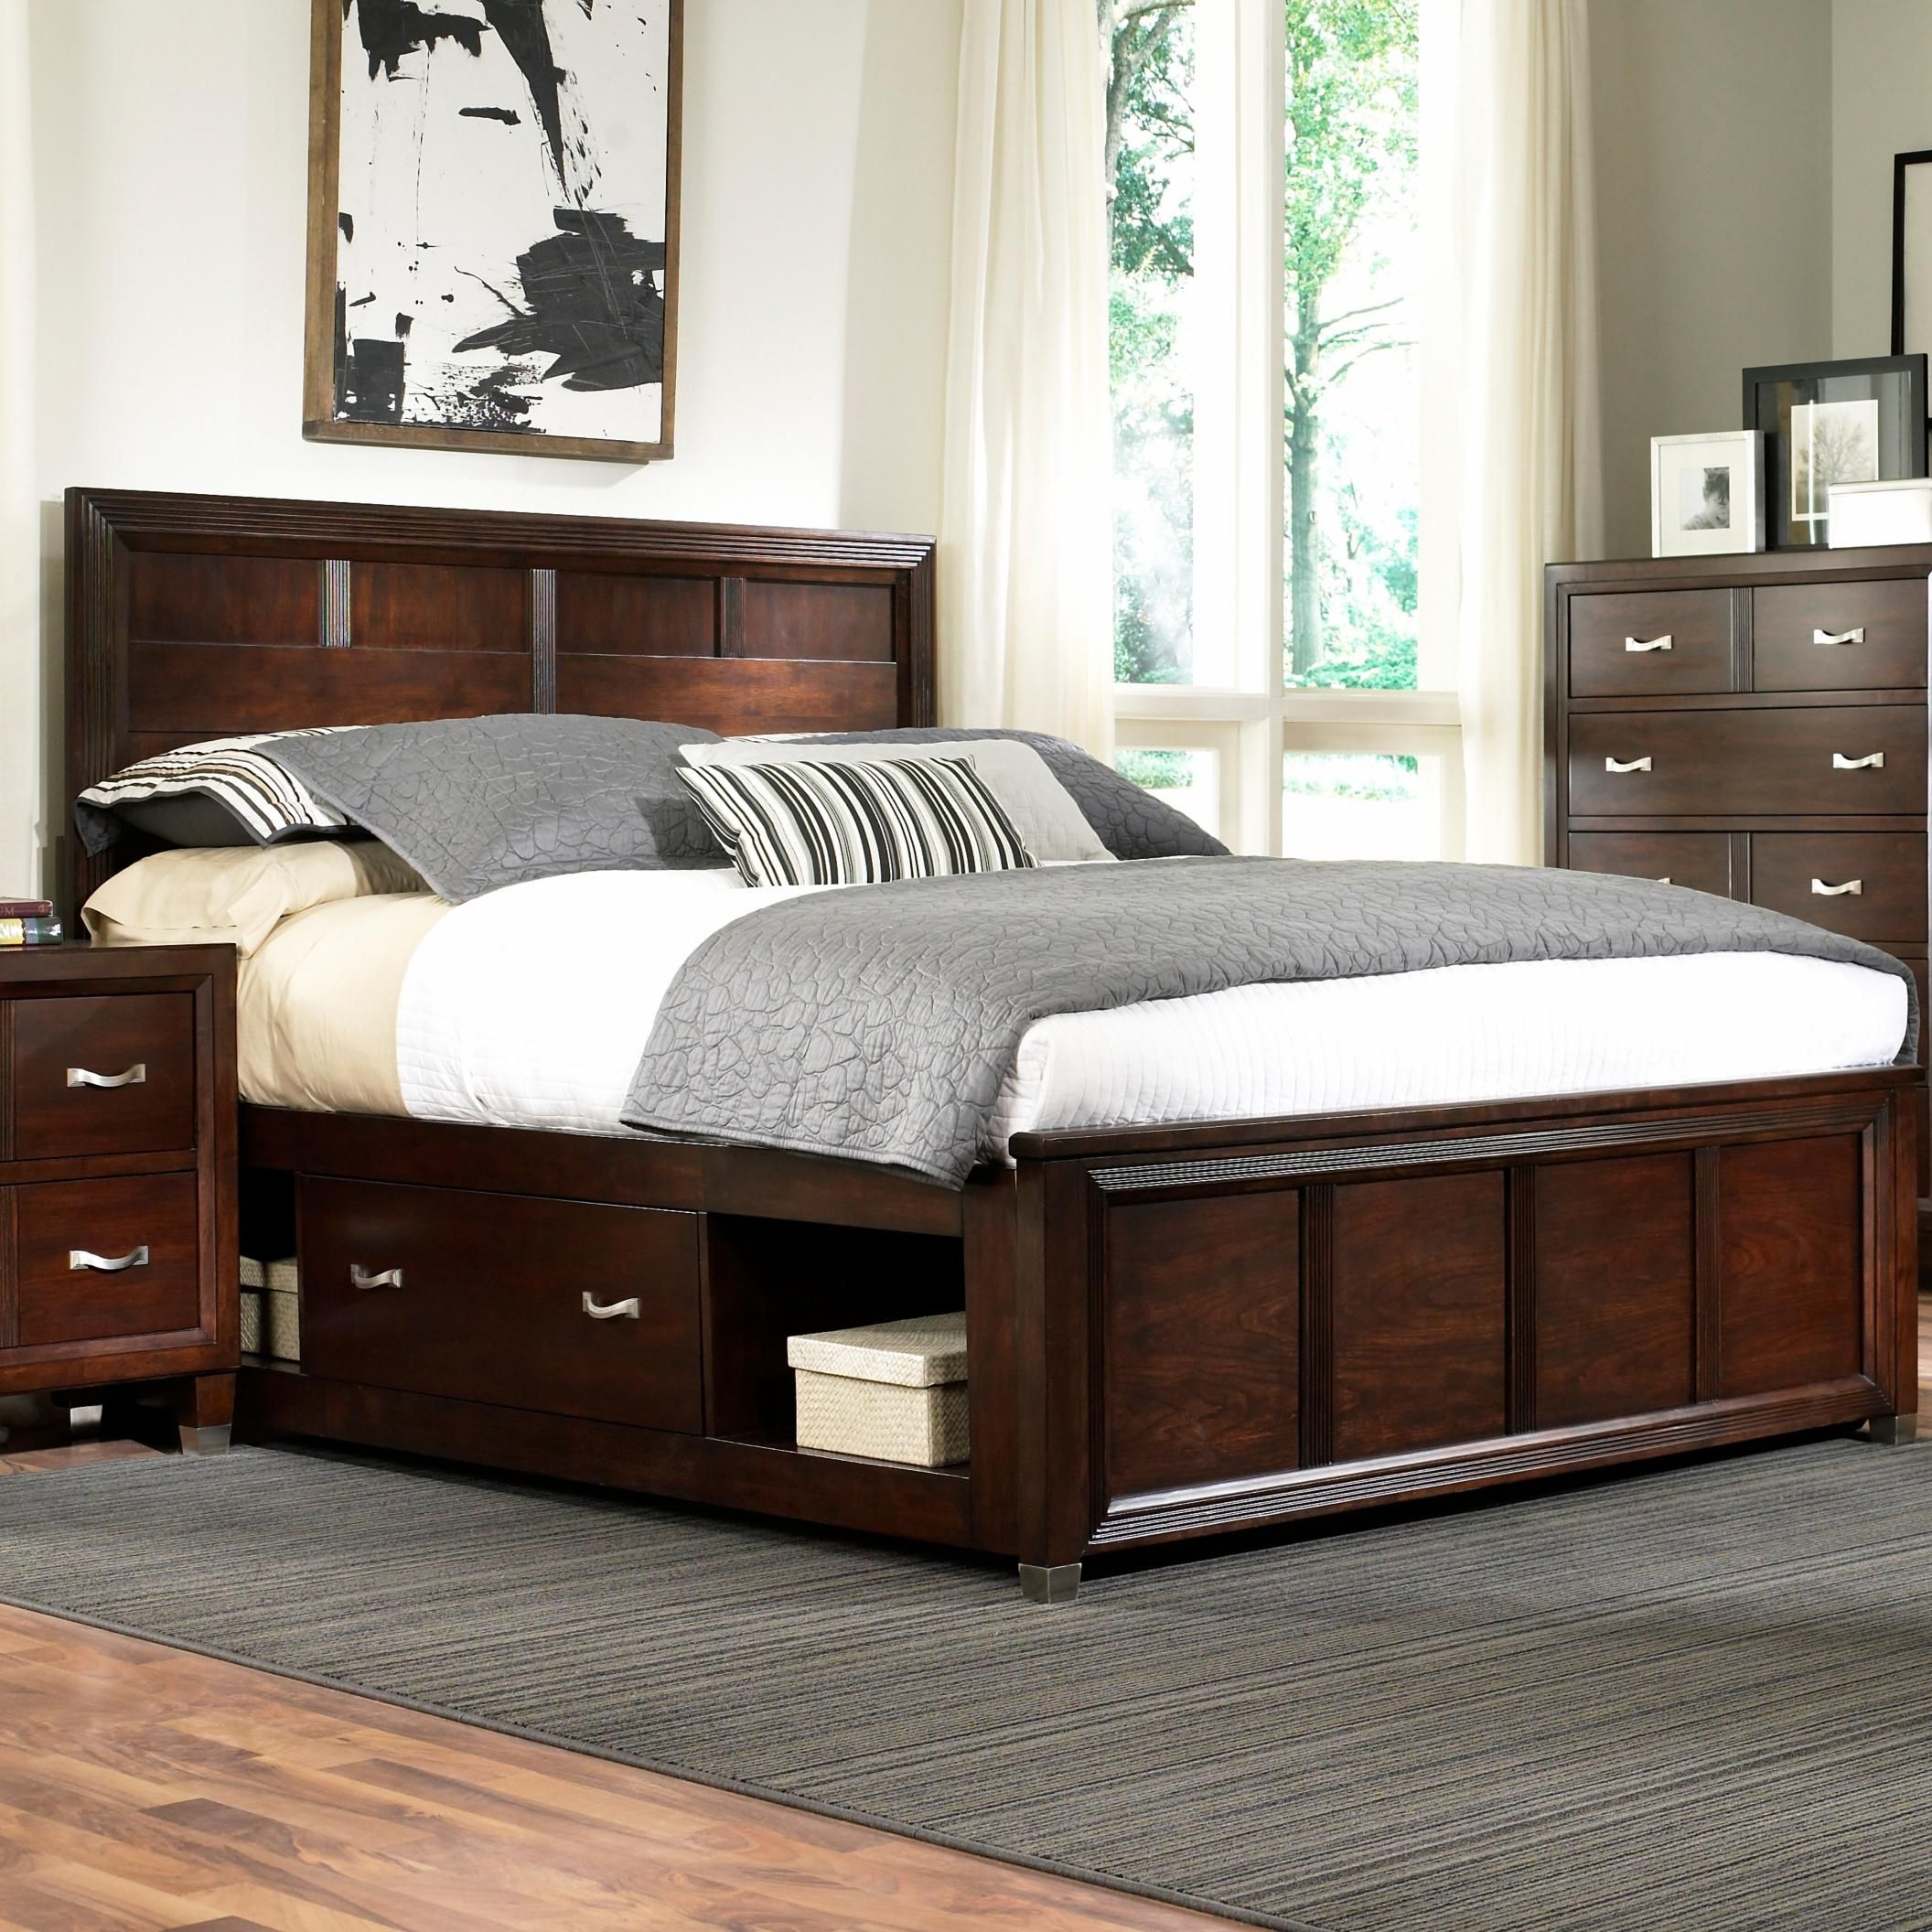 Best Eastlake 2 Queen Captain S Bed With Single Storage Side 400 x 300